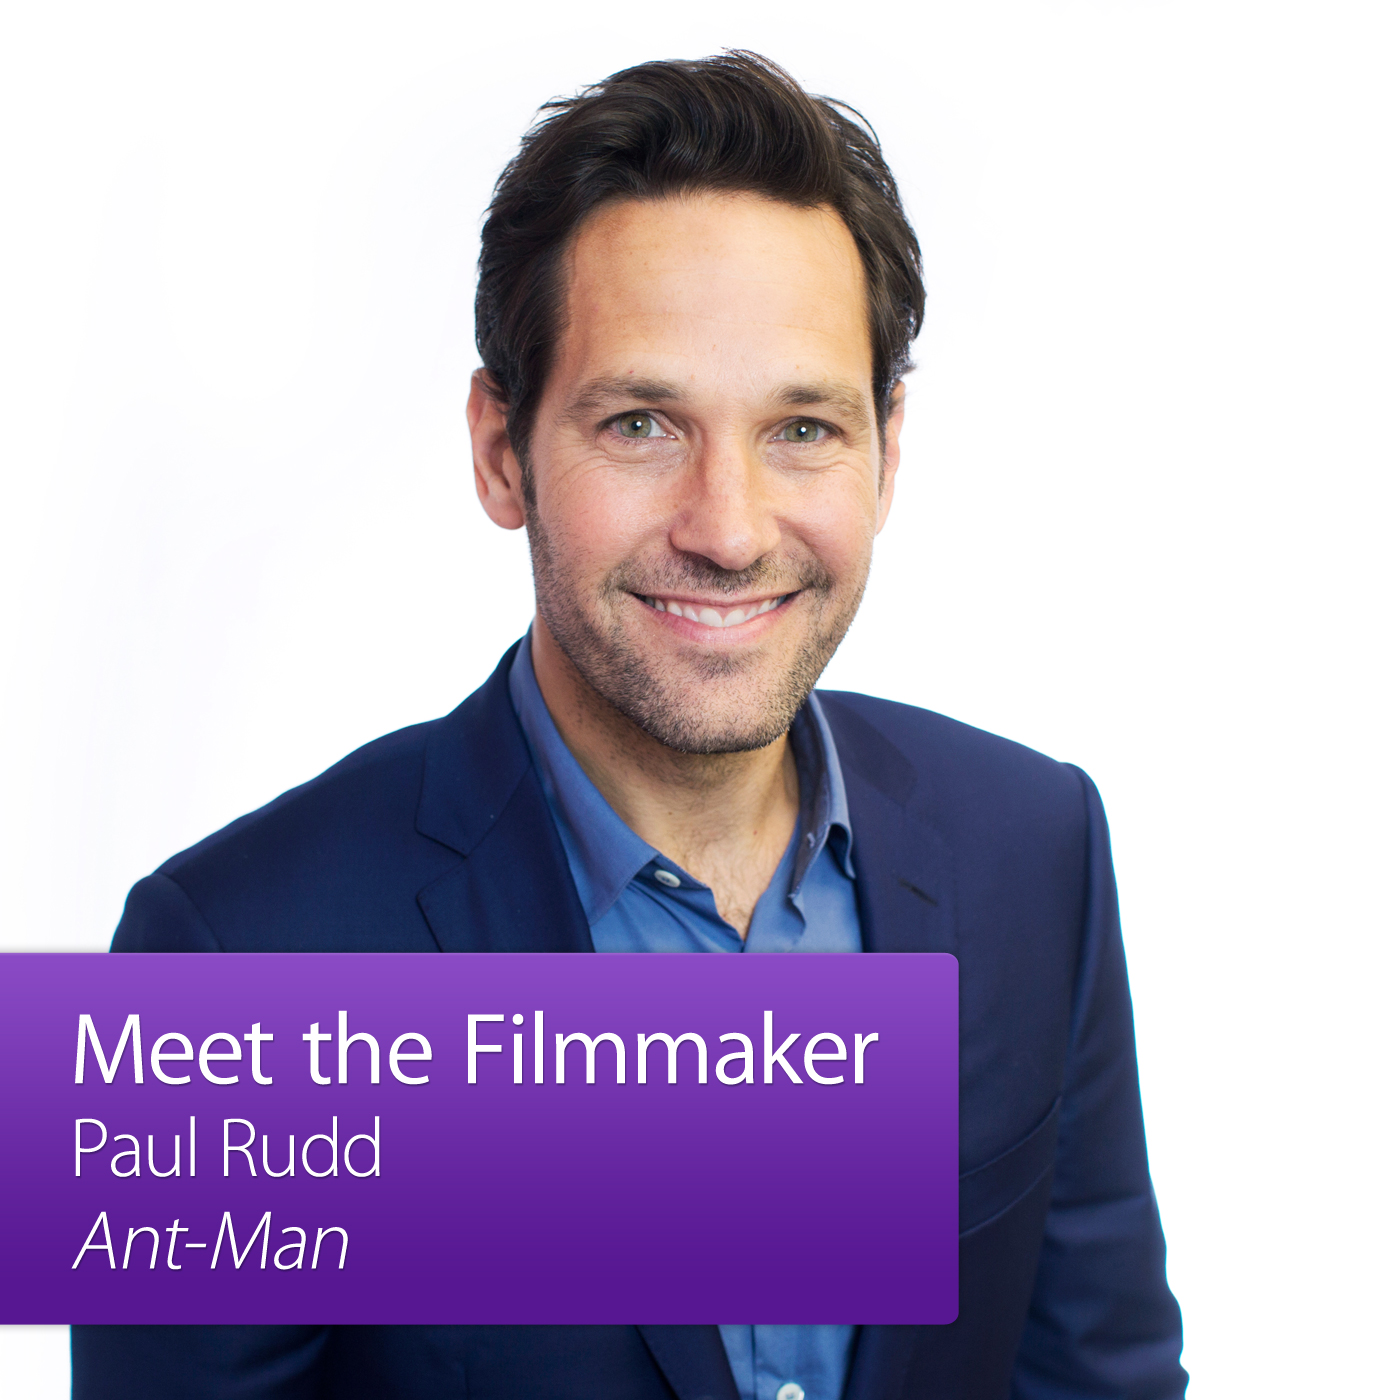 Ant-Man: Meet the Filmmaker